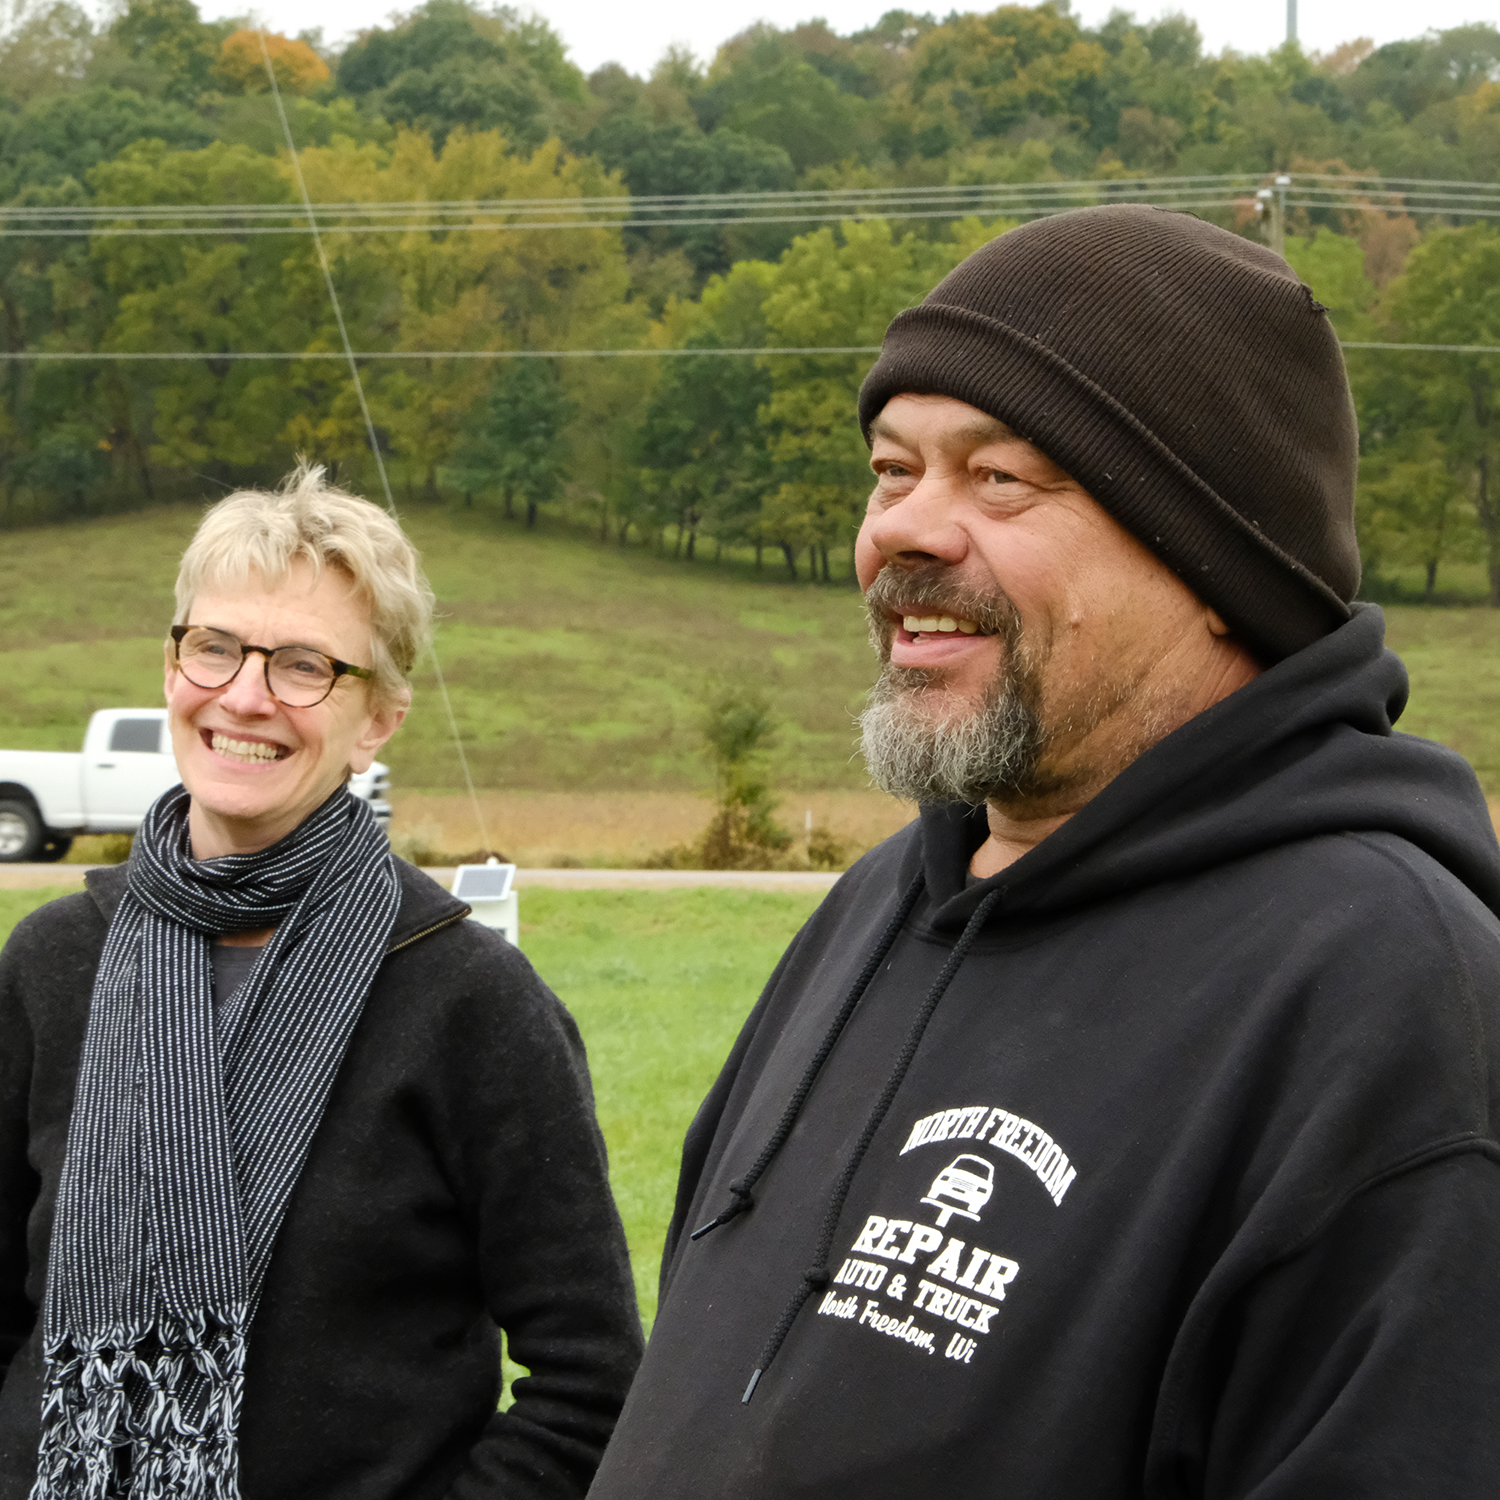 Donna Neuwirth, co-founder of Wormfarm with Jay Salinas, and one of the local farmers, Mark Shimniok, who offer their land for Farm/ArtDtour installations